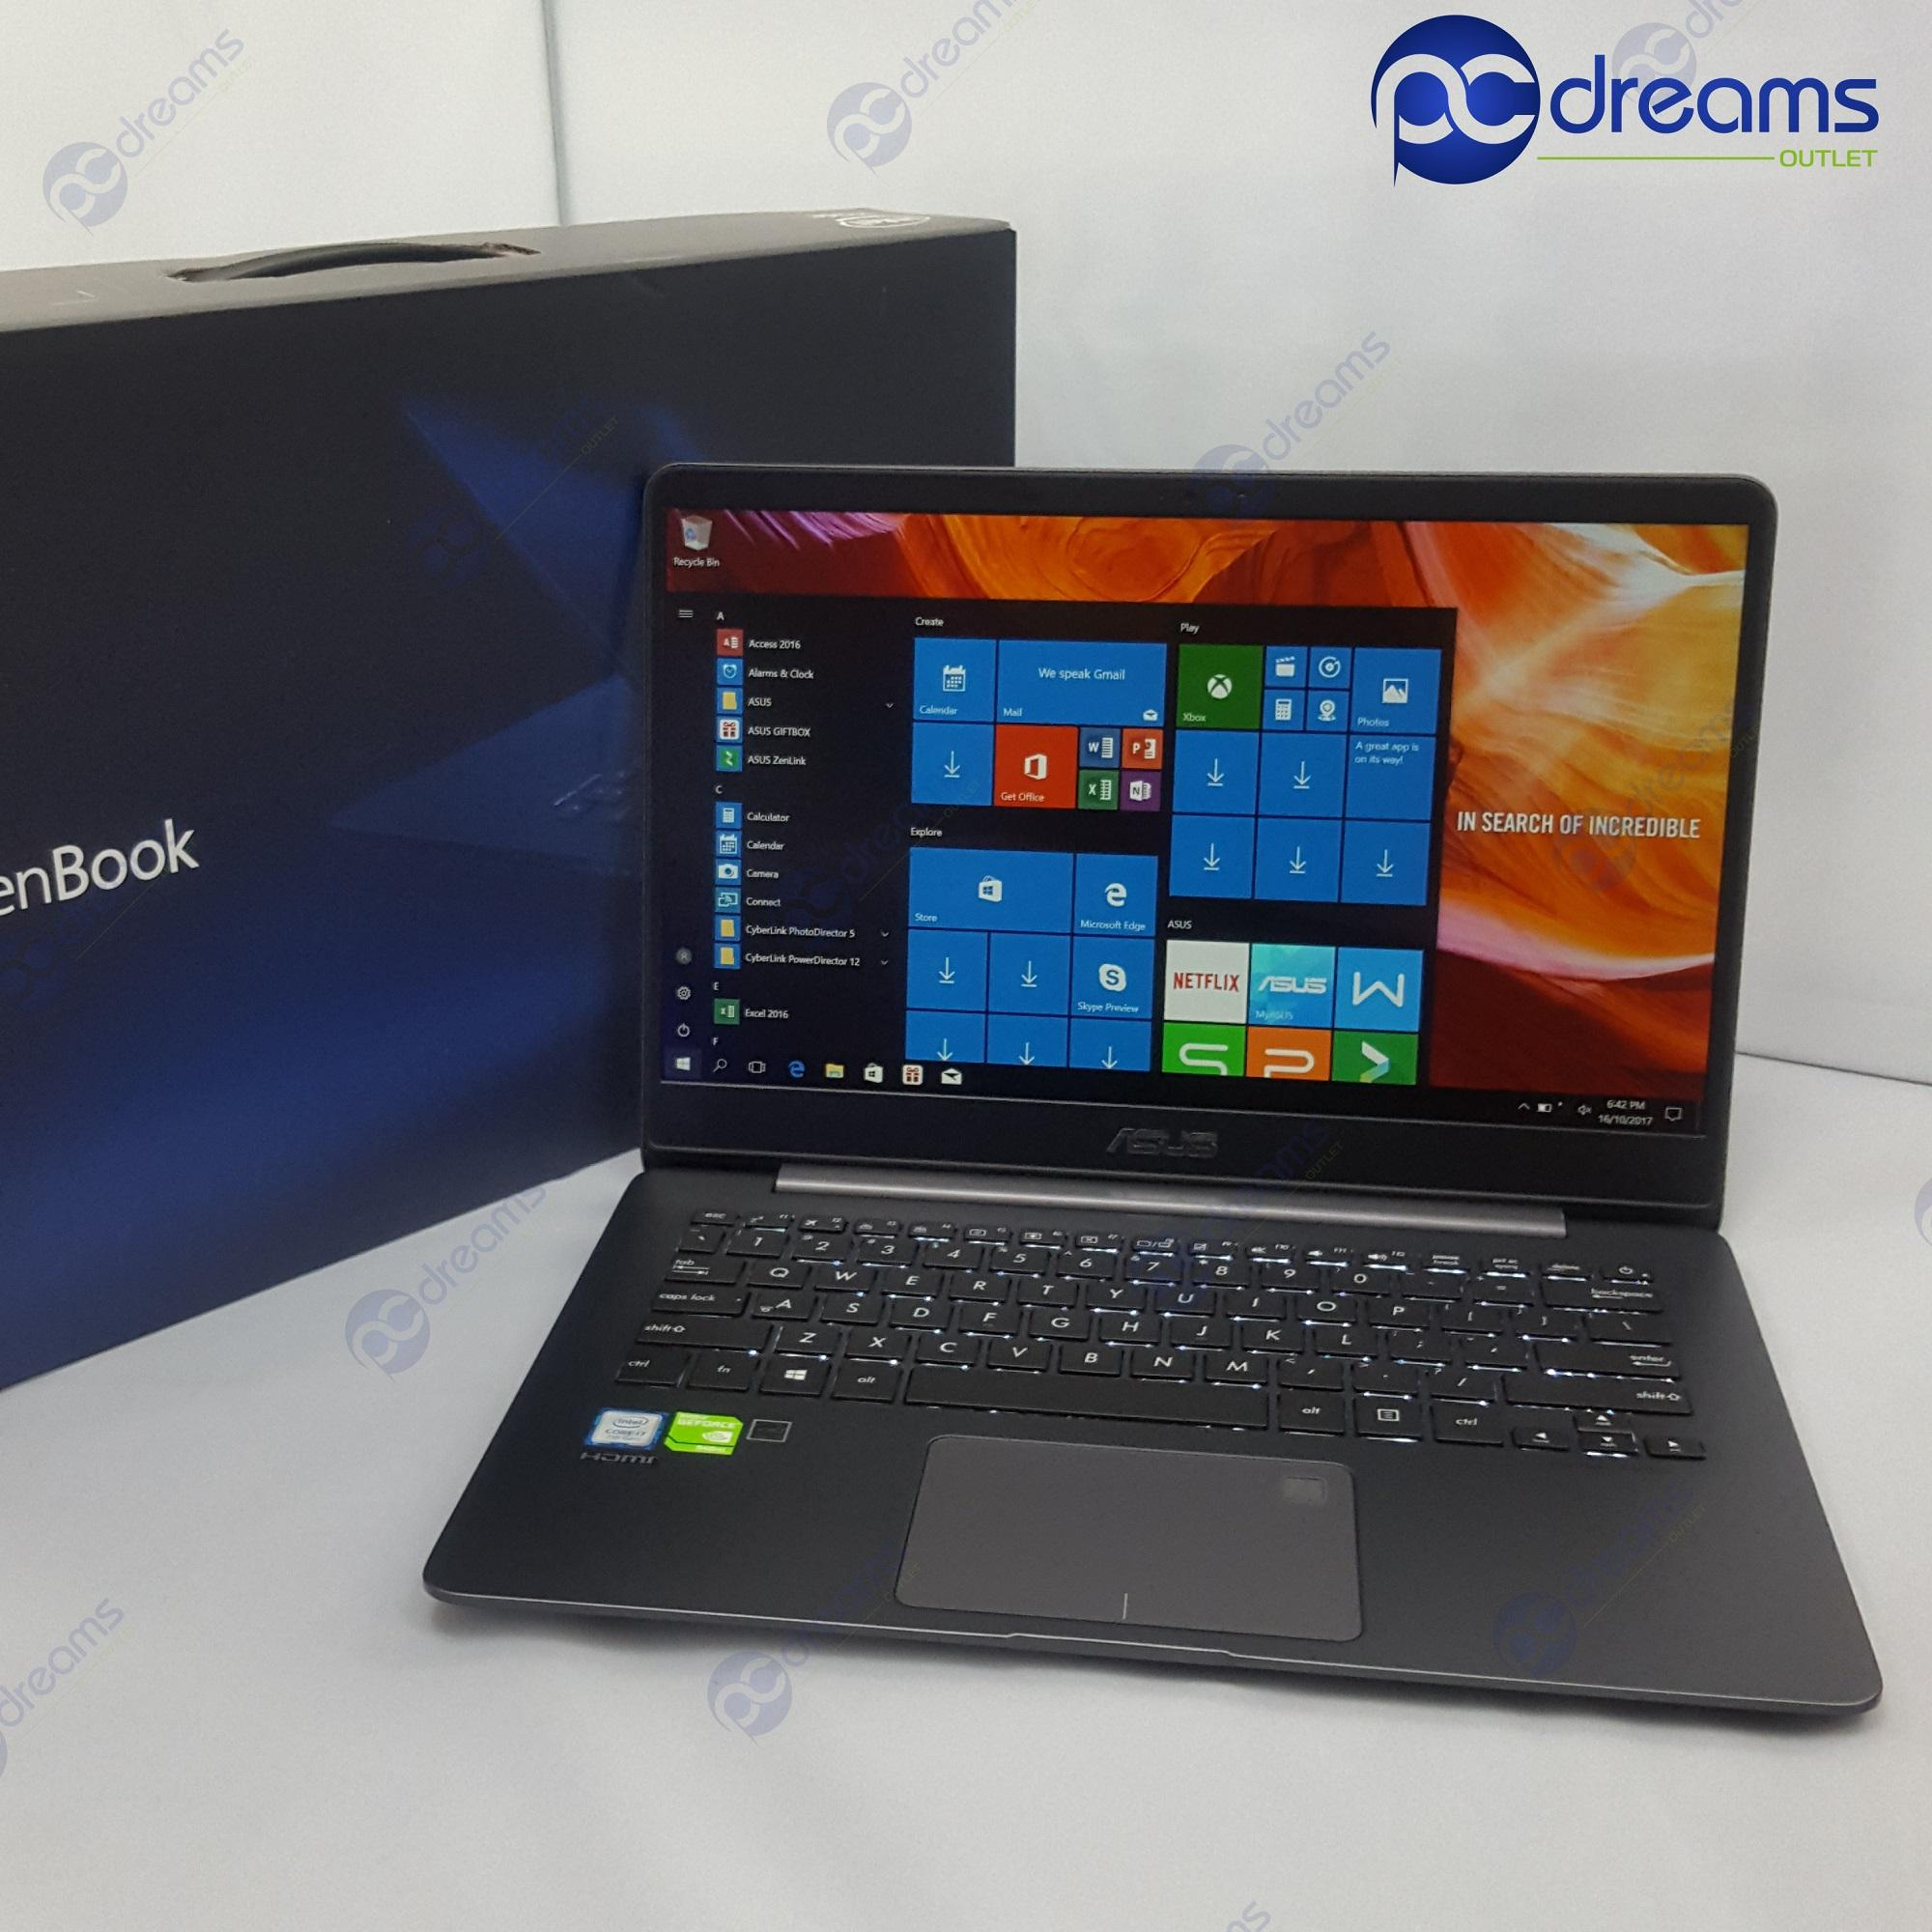 NATIONAL DAY PROMOTION! ASUS ZENBOOK UX430UN-GV115T i5-8250U/8GB/512GB SSD [Premium Refreshed]